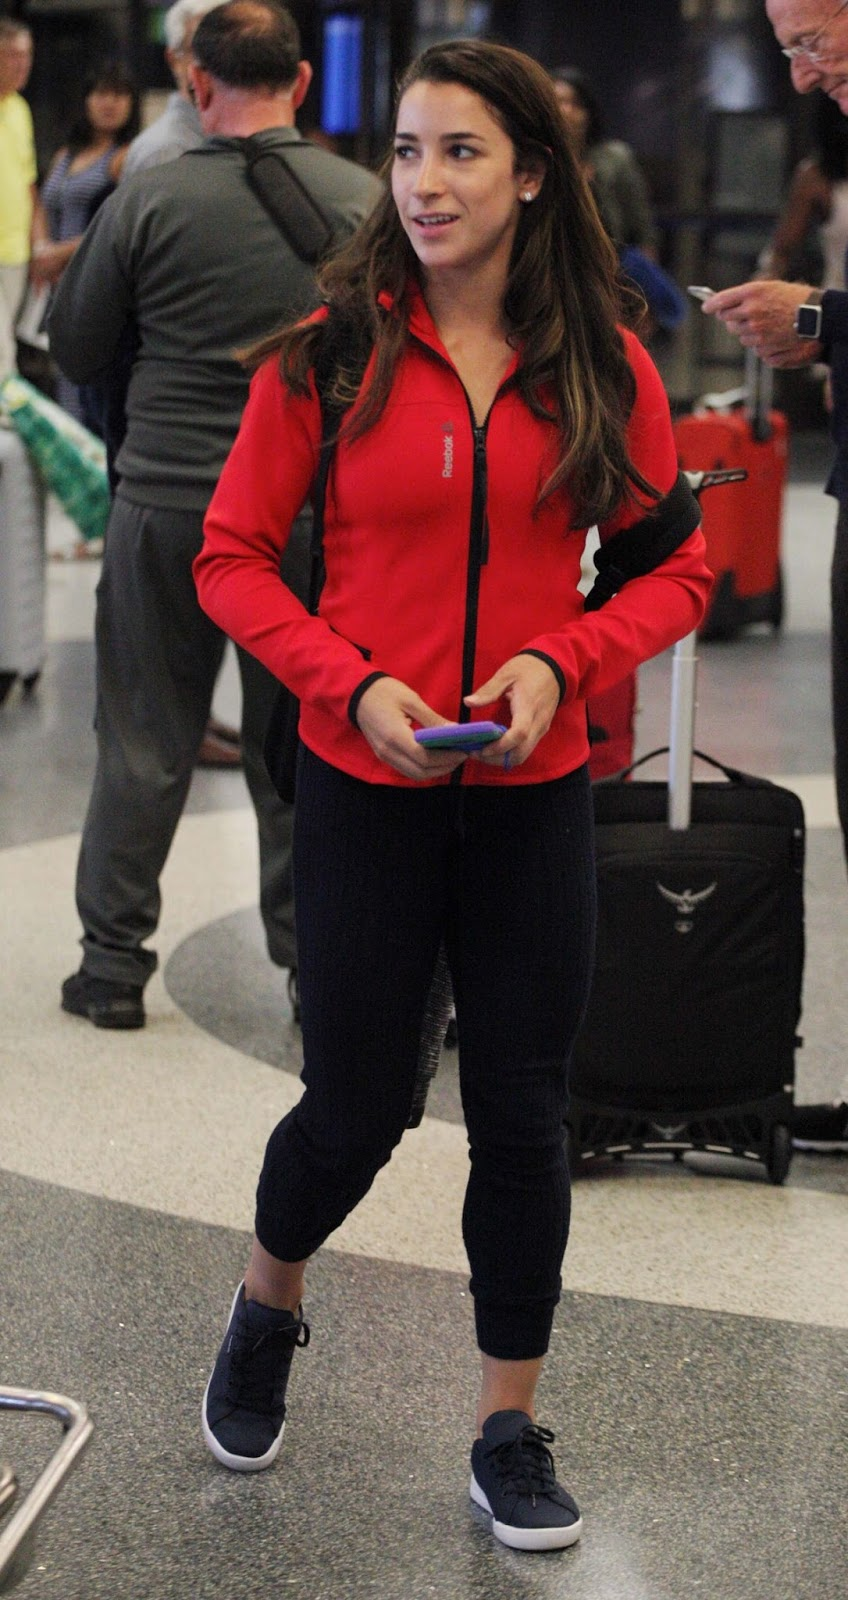 Aly Raisman At Lax Airport In Los Angeles